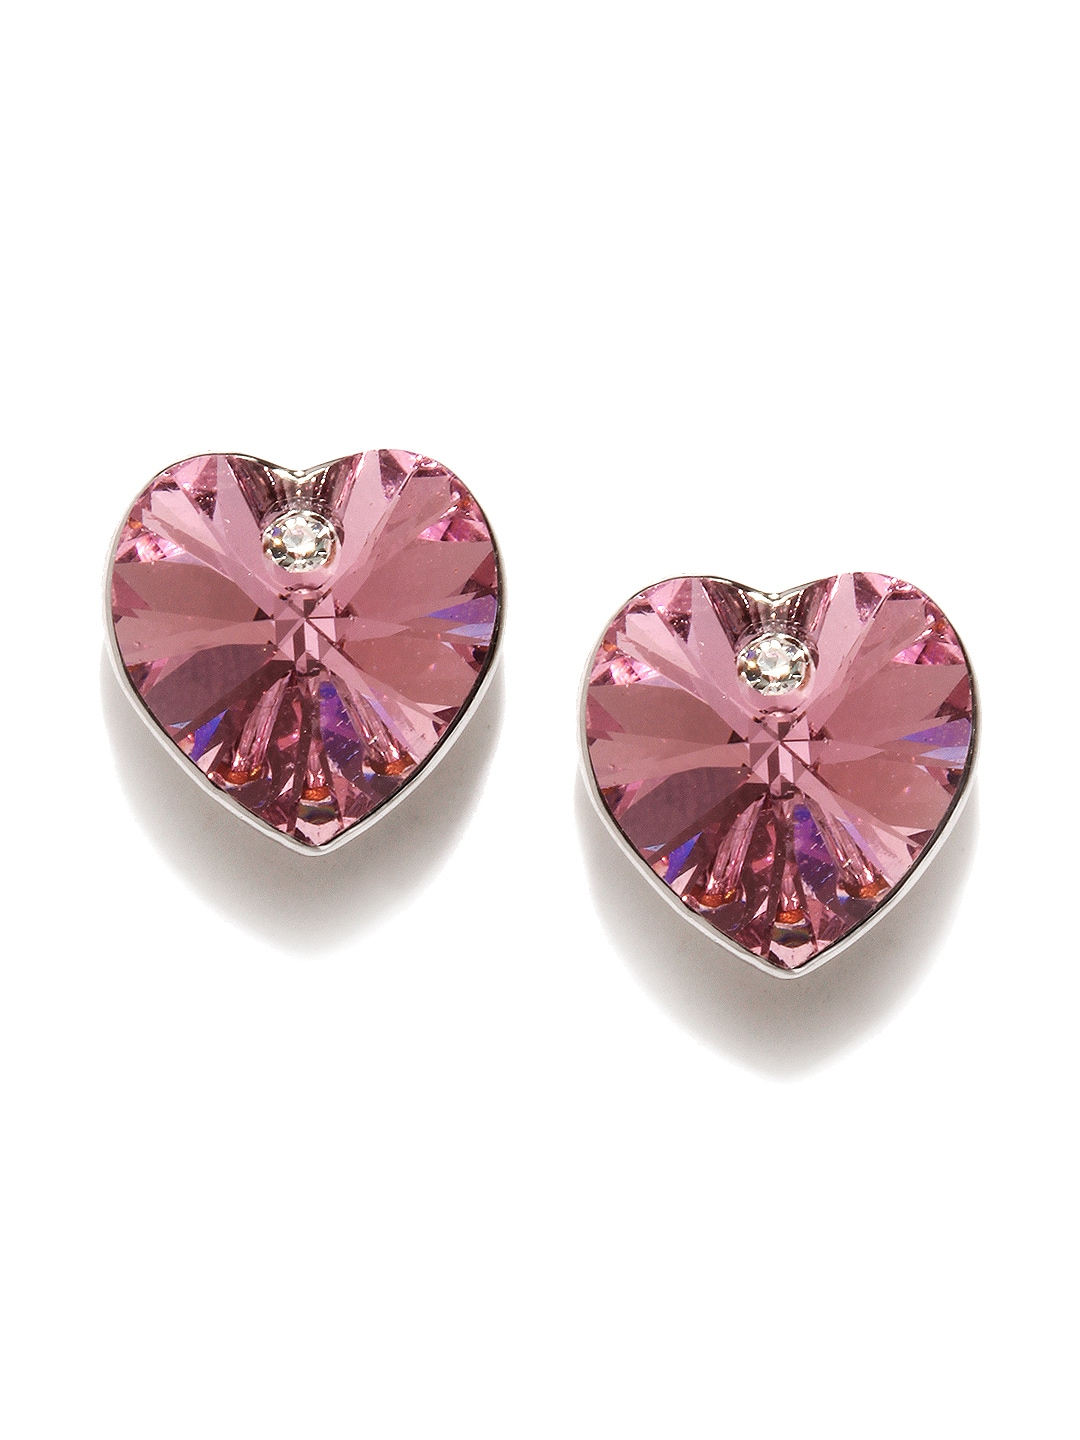 Ouxi SWAN By Ouxi Pink Heart-Shaped Stud Earrings With Swarovski Elements (Multicolor)